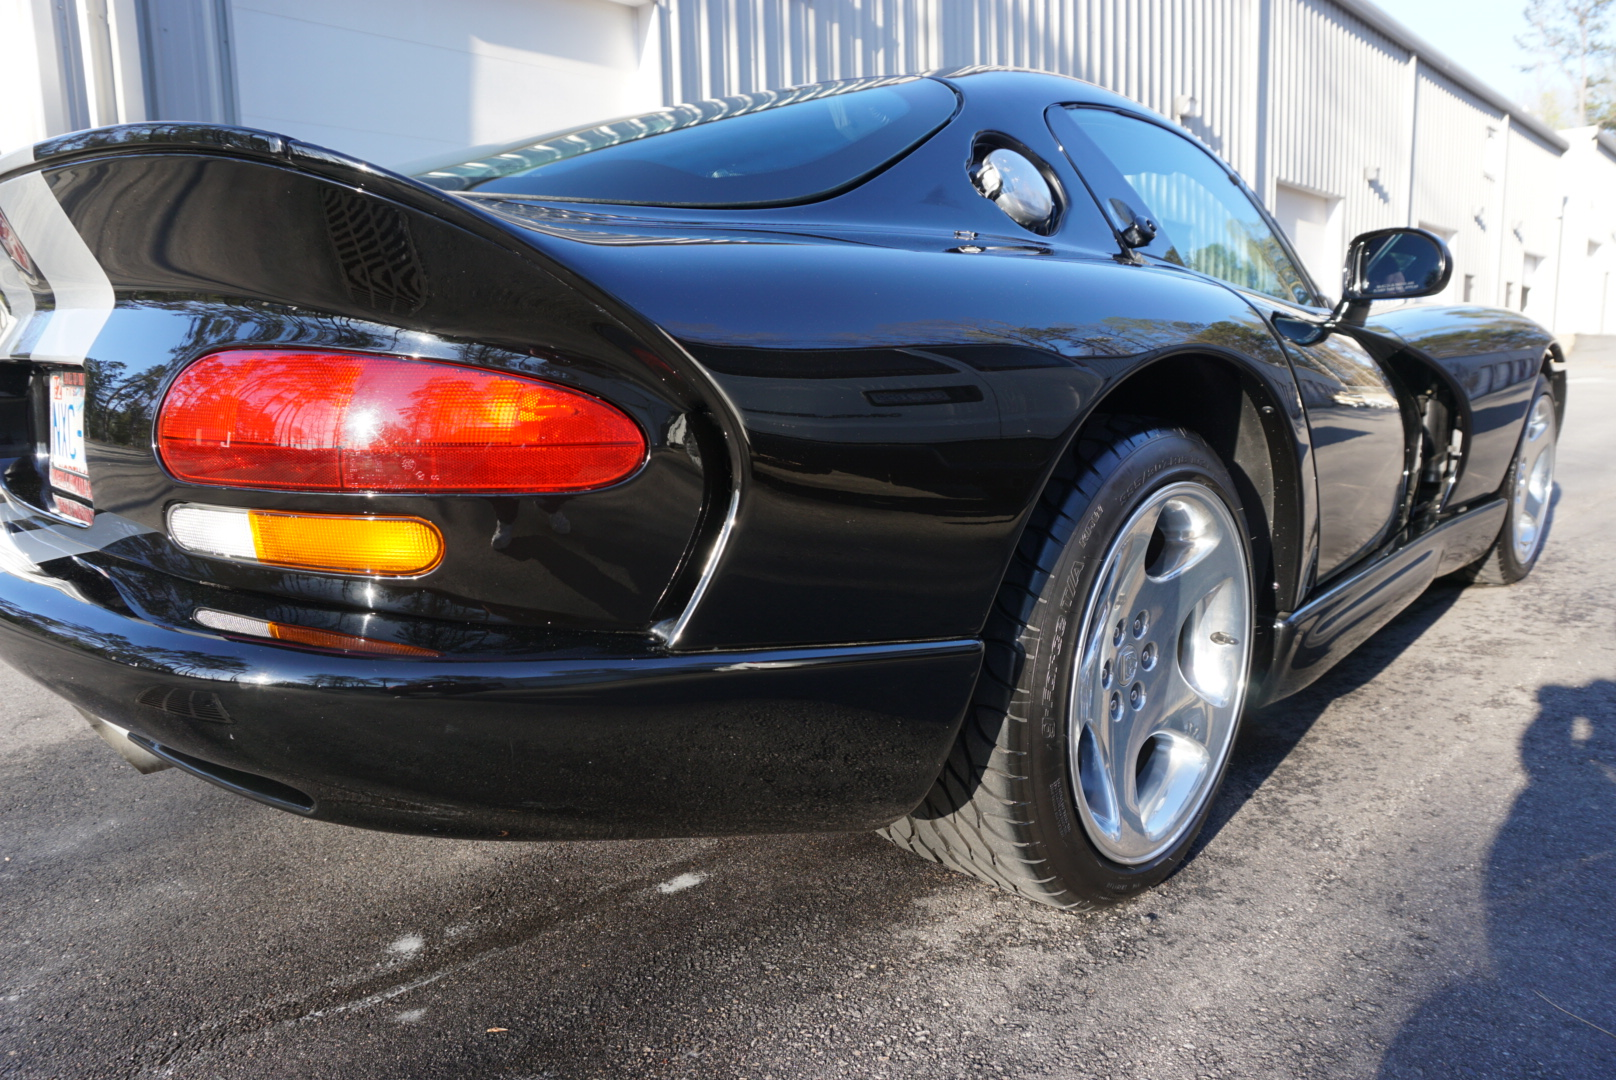 Full Exterior Detail of 1999 Dodge Viper